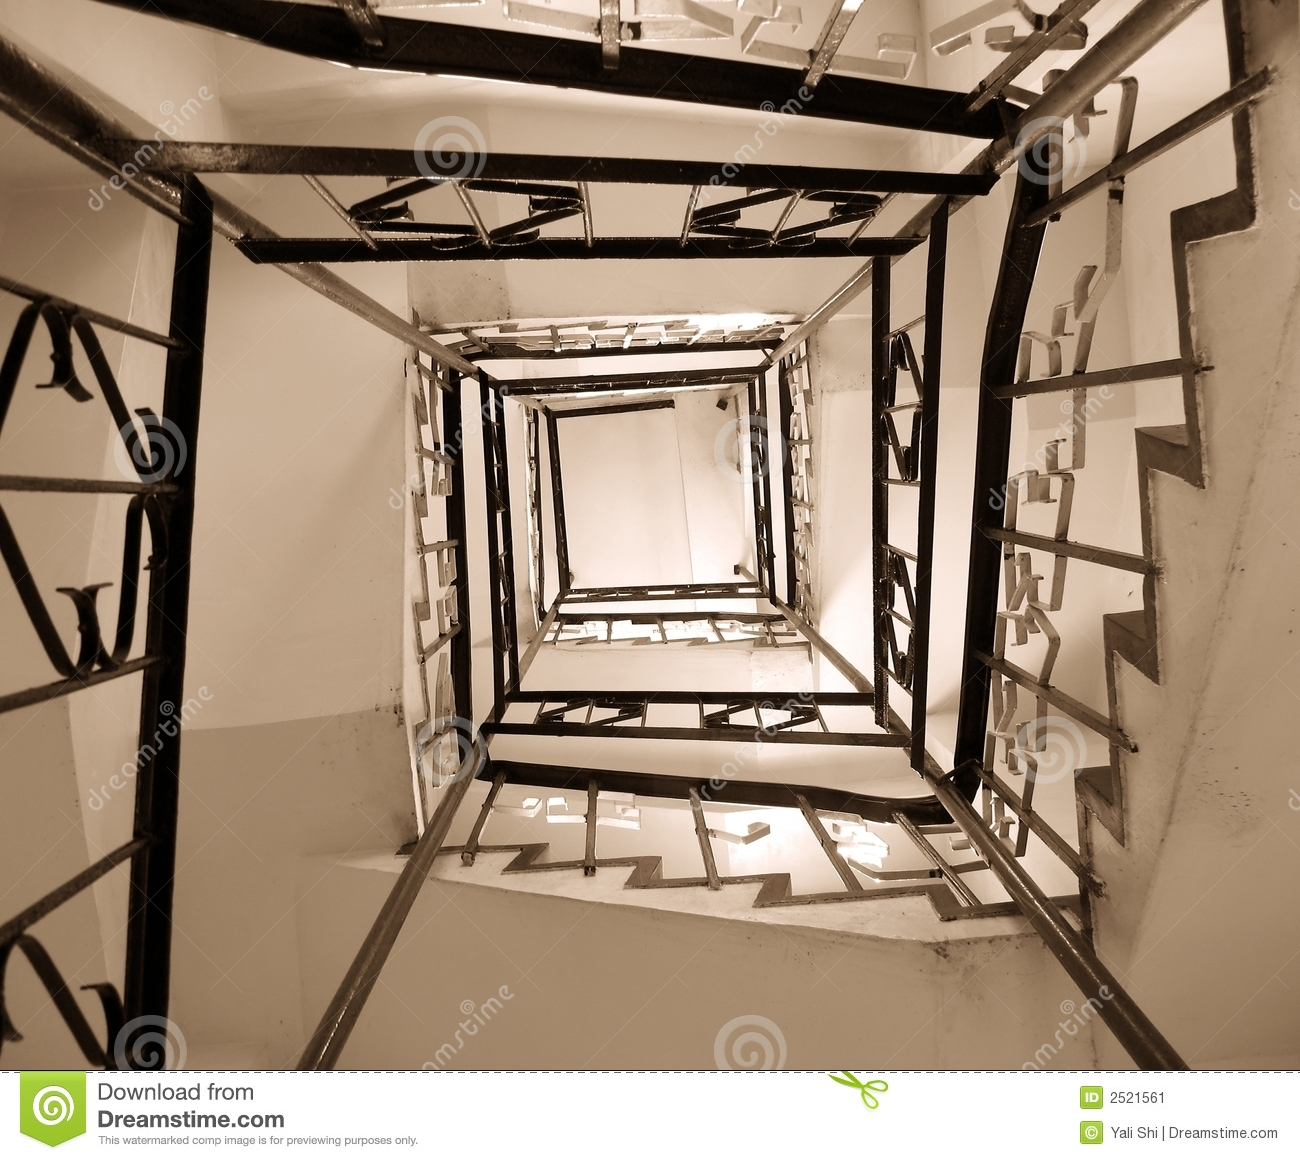 Old winding stairwell stock image image 2521561 for Tapisser cage d escalier